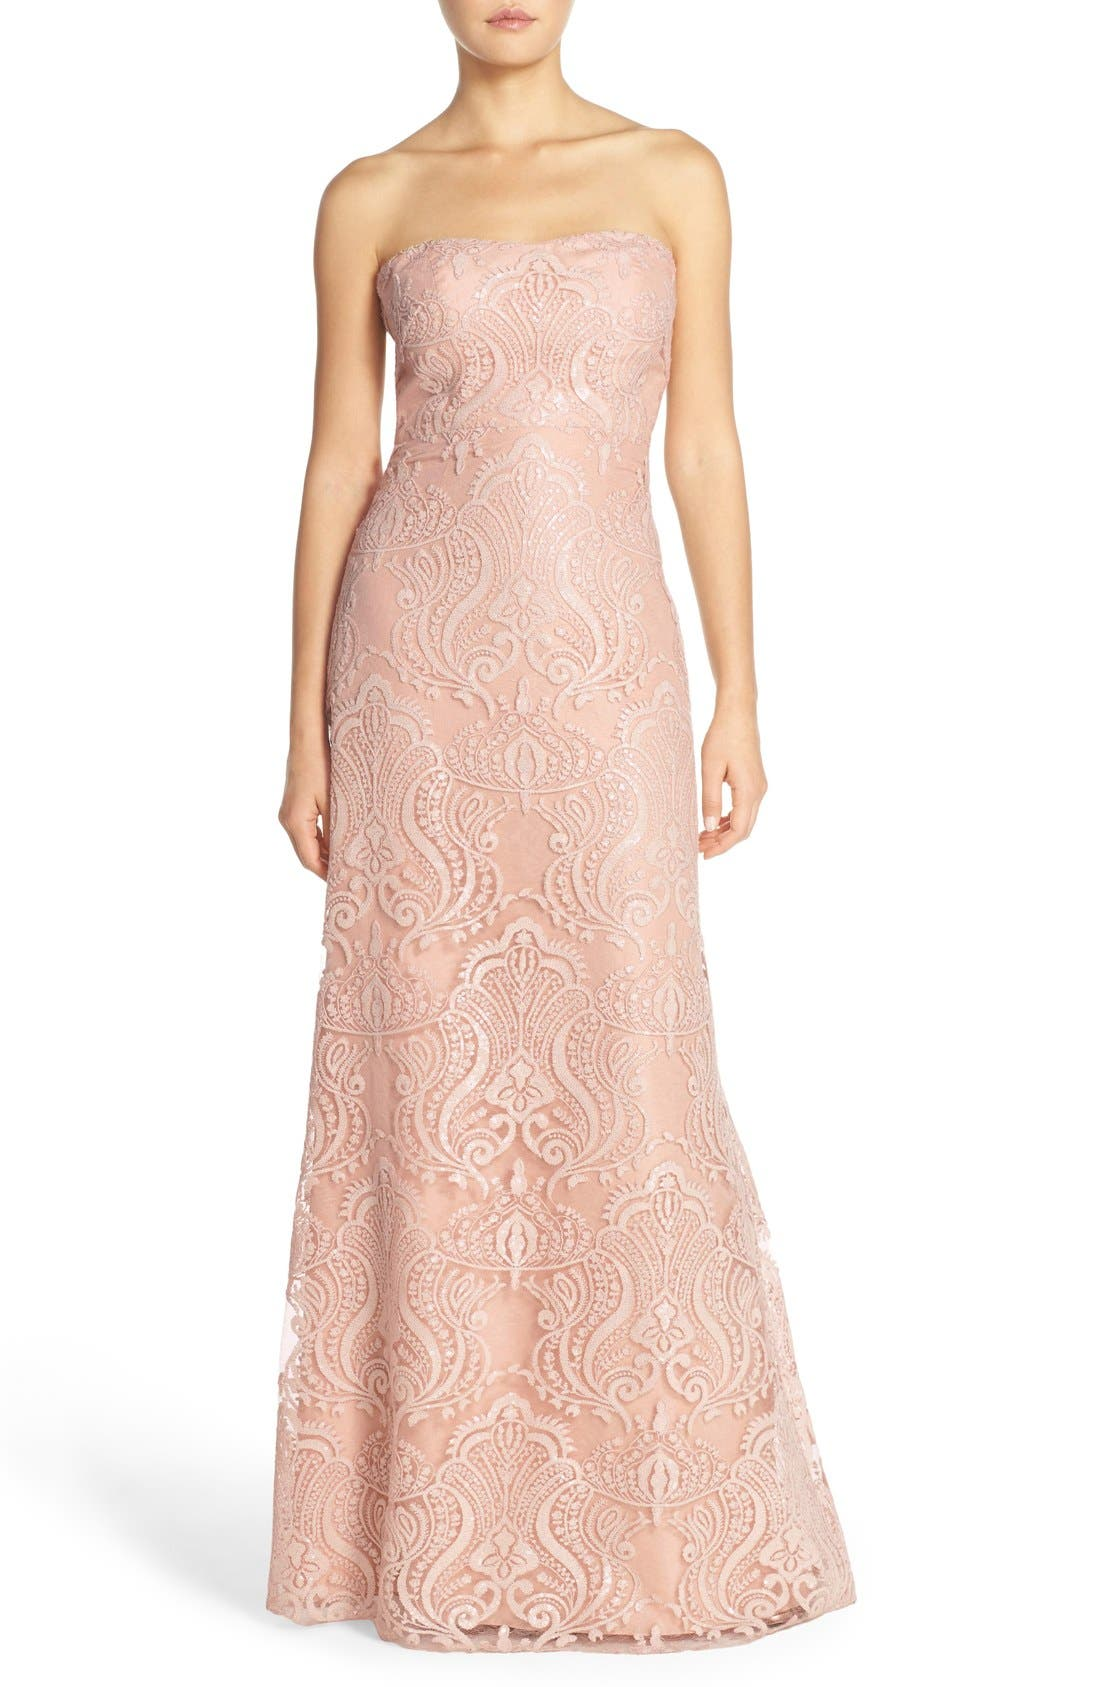 Main Image - Jenny Yoo 'Sadie' Sequin Lace Strapless A-Line Gown